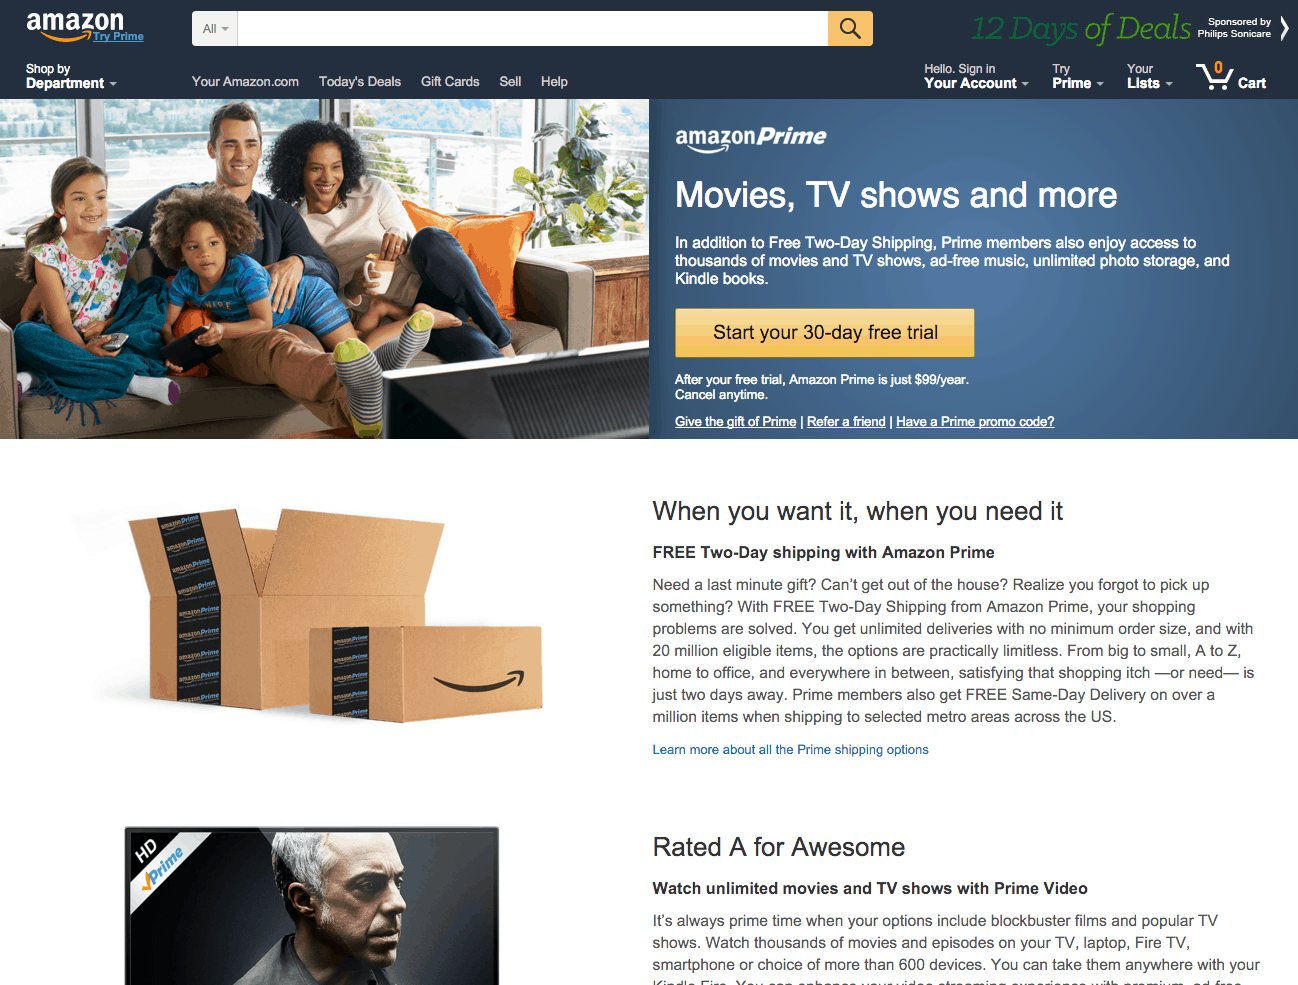 Amazon Prime Is A Great Example Of A Paid Membership Program